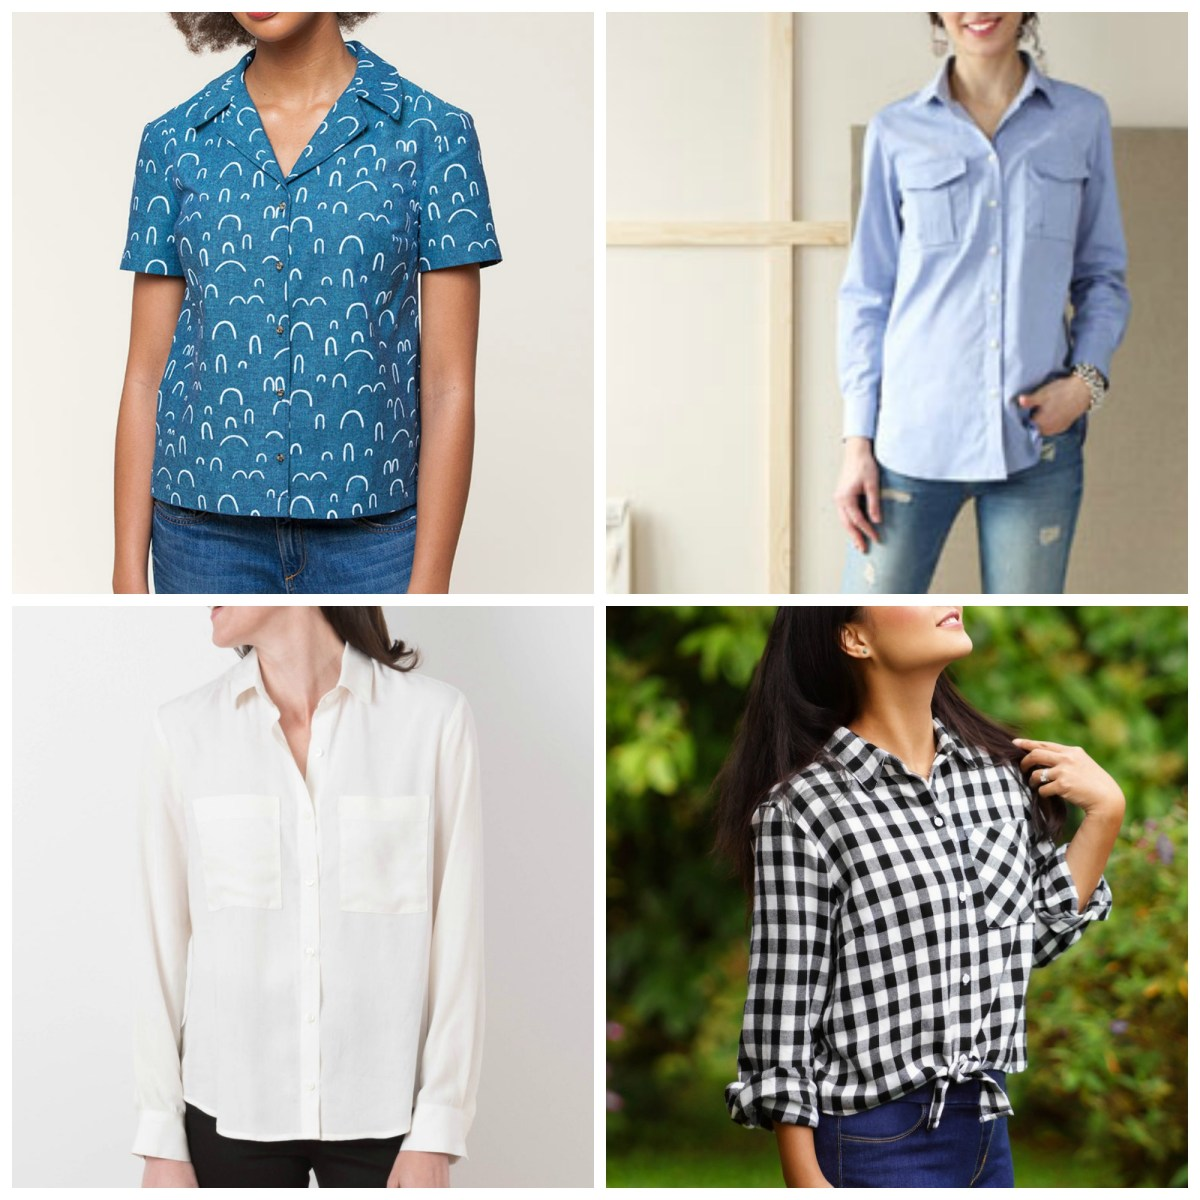 Picture collage showing four different shirt patterns as noted in the main text